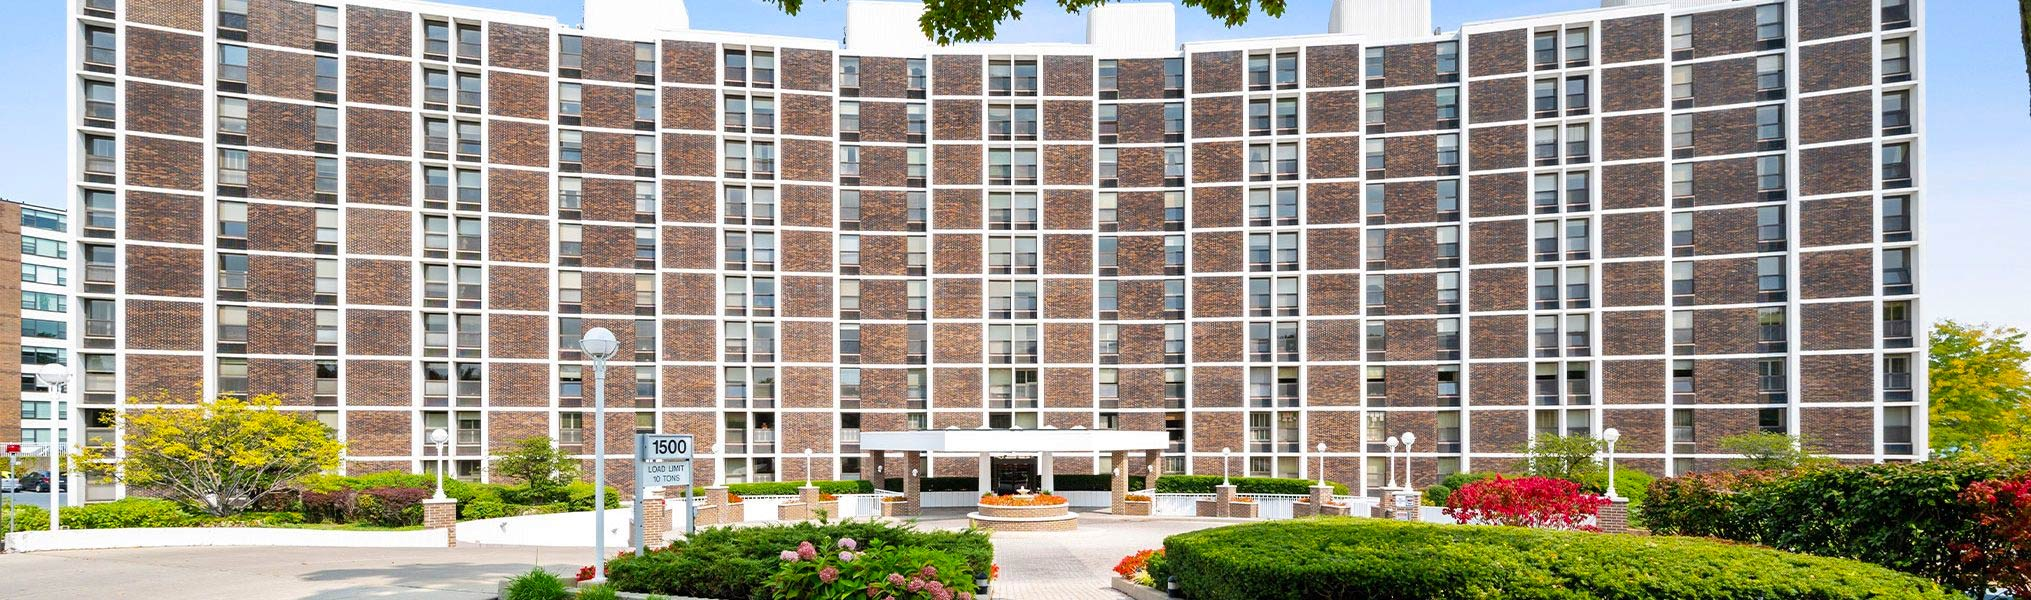 Our Community | The 1500 Sheridan Road Homeowners Association - Wilmette, Illinois